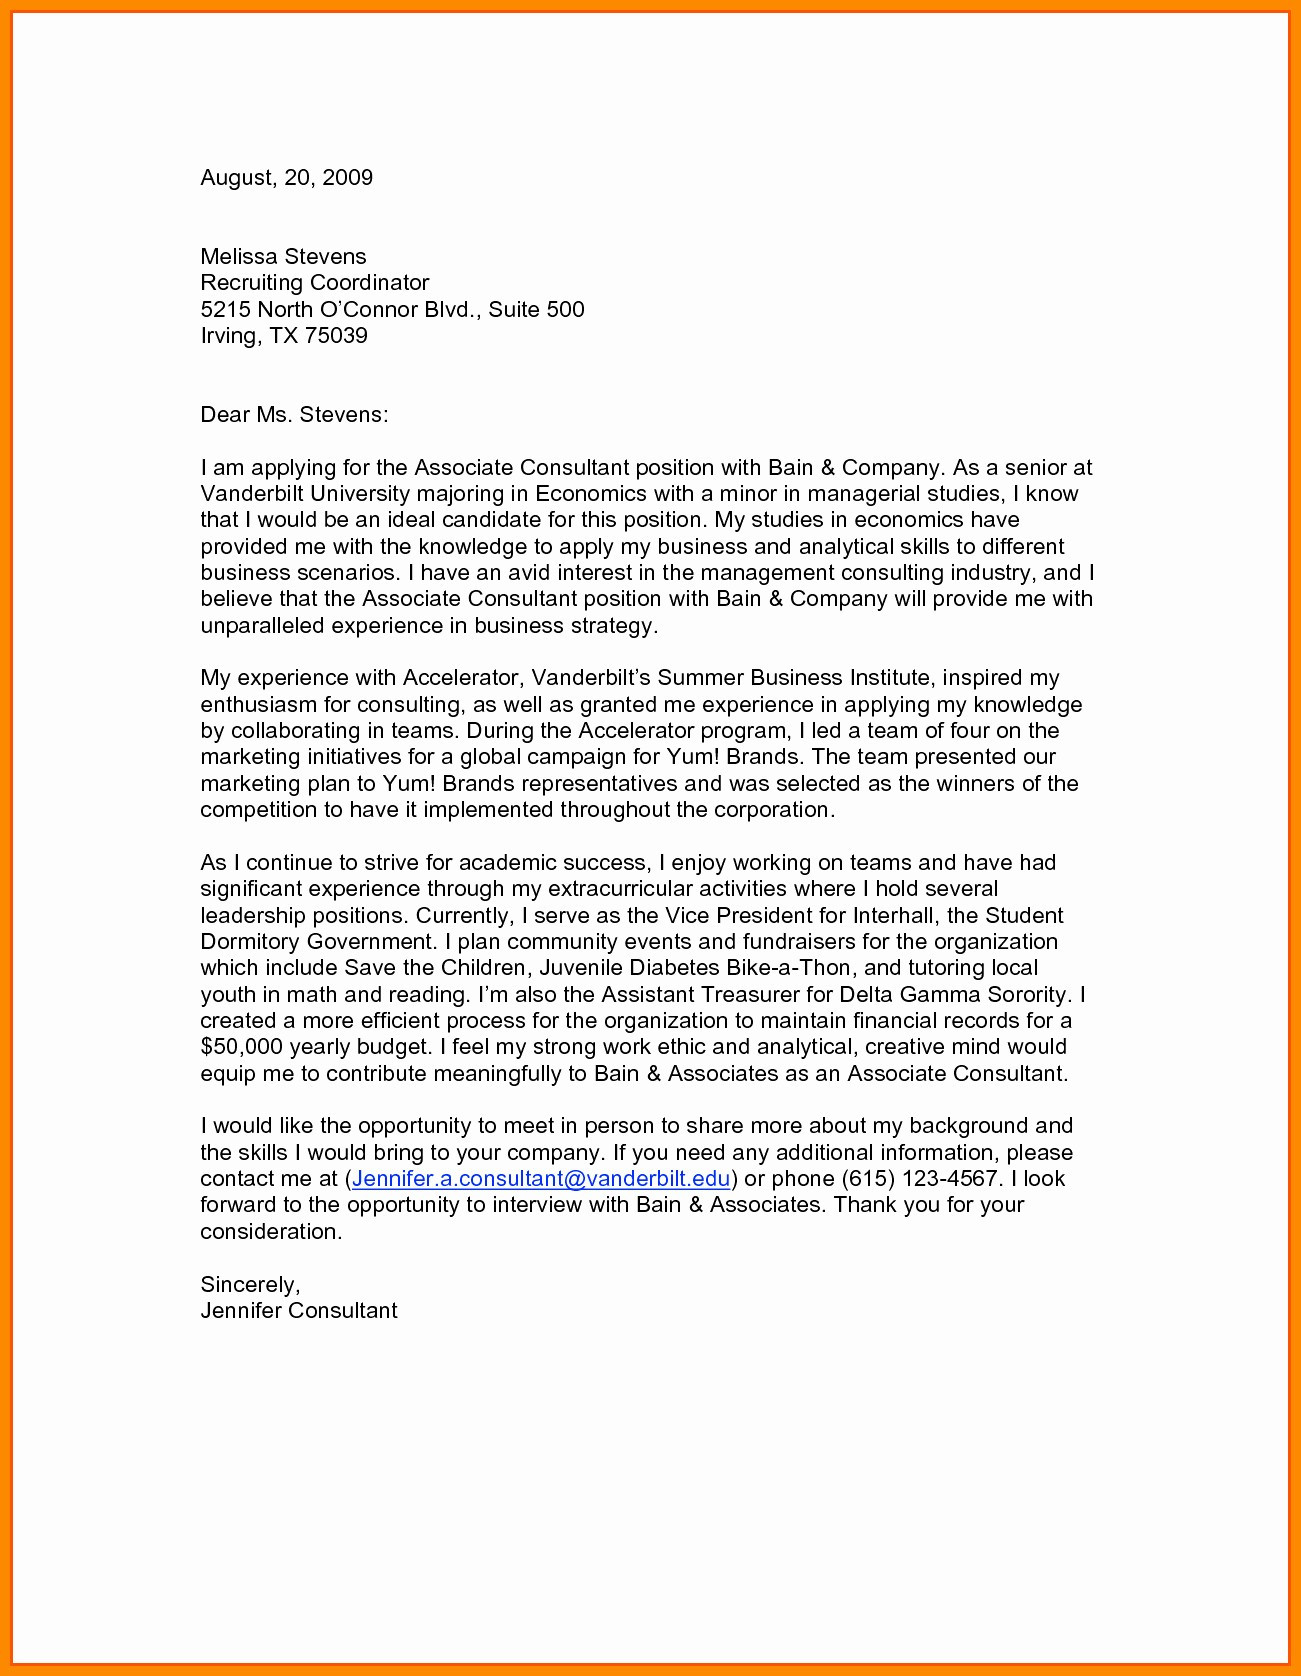 Resume and Cover Letter Template - Cover Letter Examples Save Resume and Cover Letter Examples Elegant